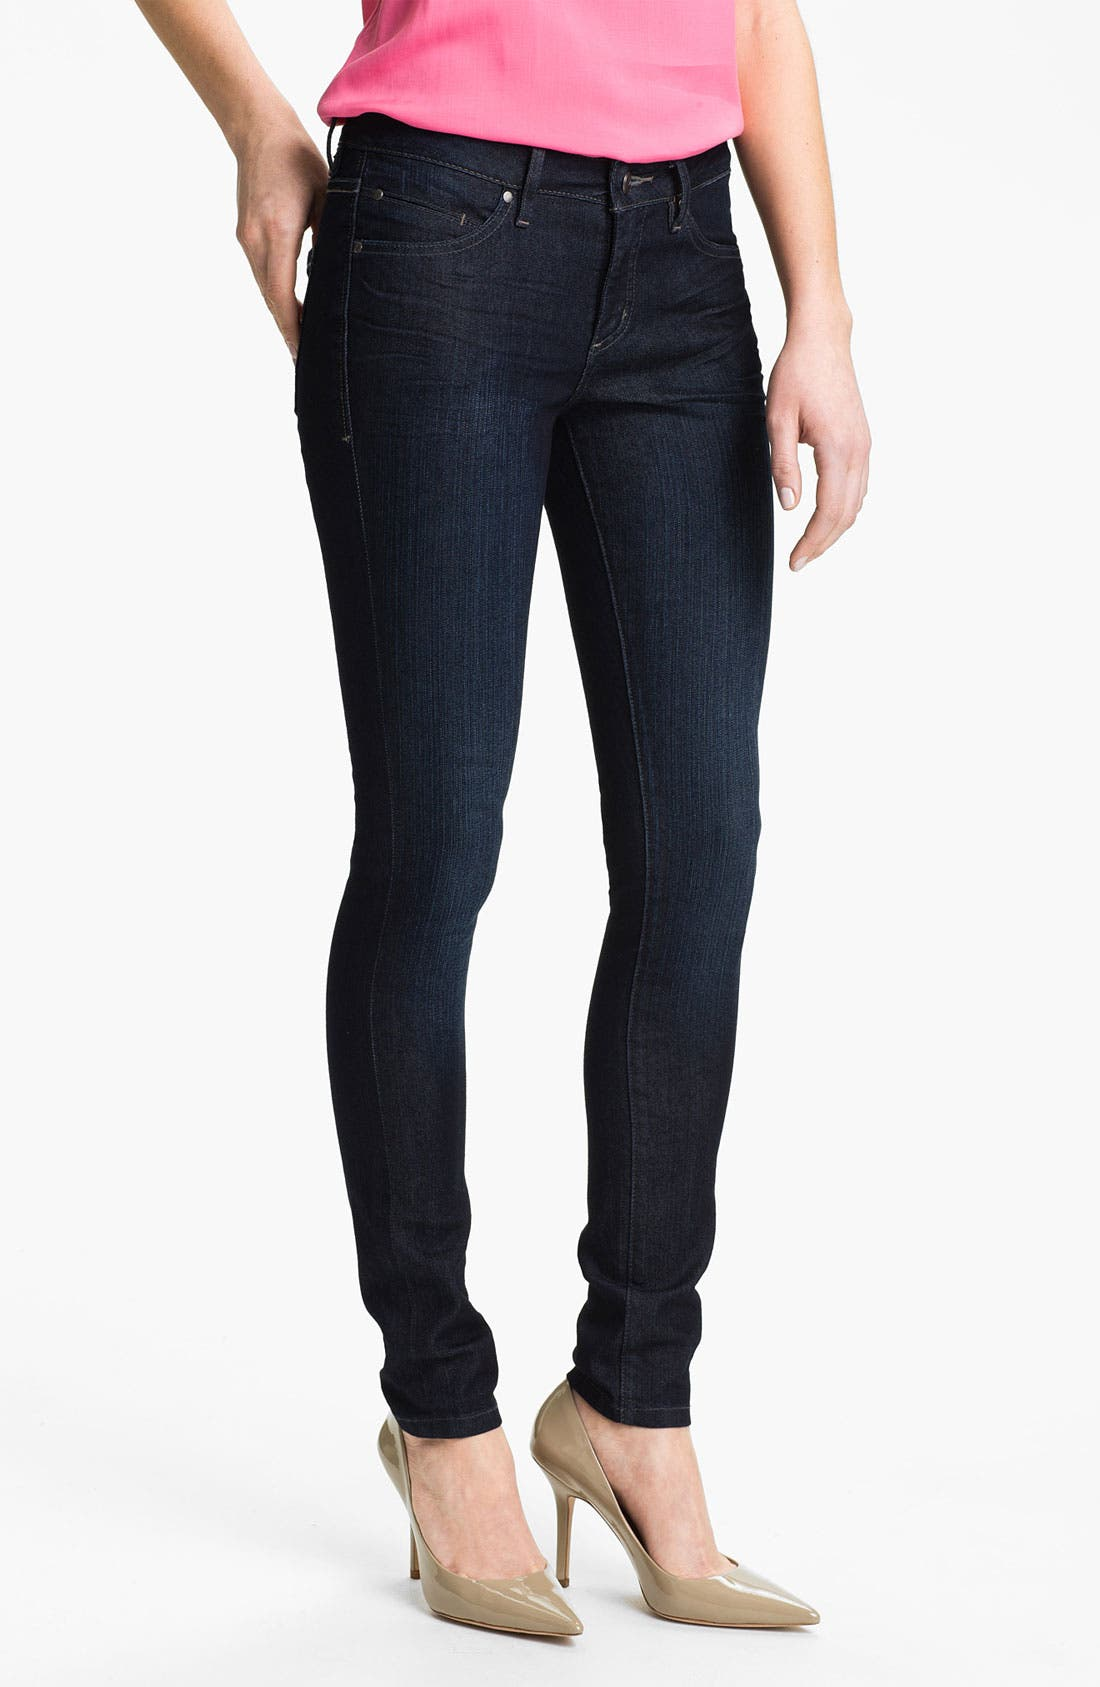 Alternate Image 1 Selected - Jag Jeans 'Reece' Skinny Jeans (Petite)